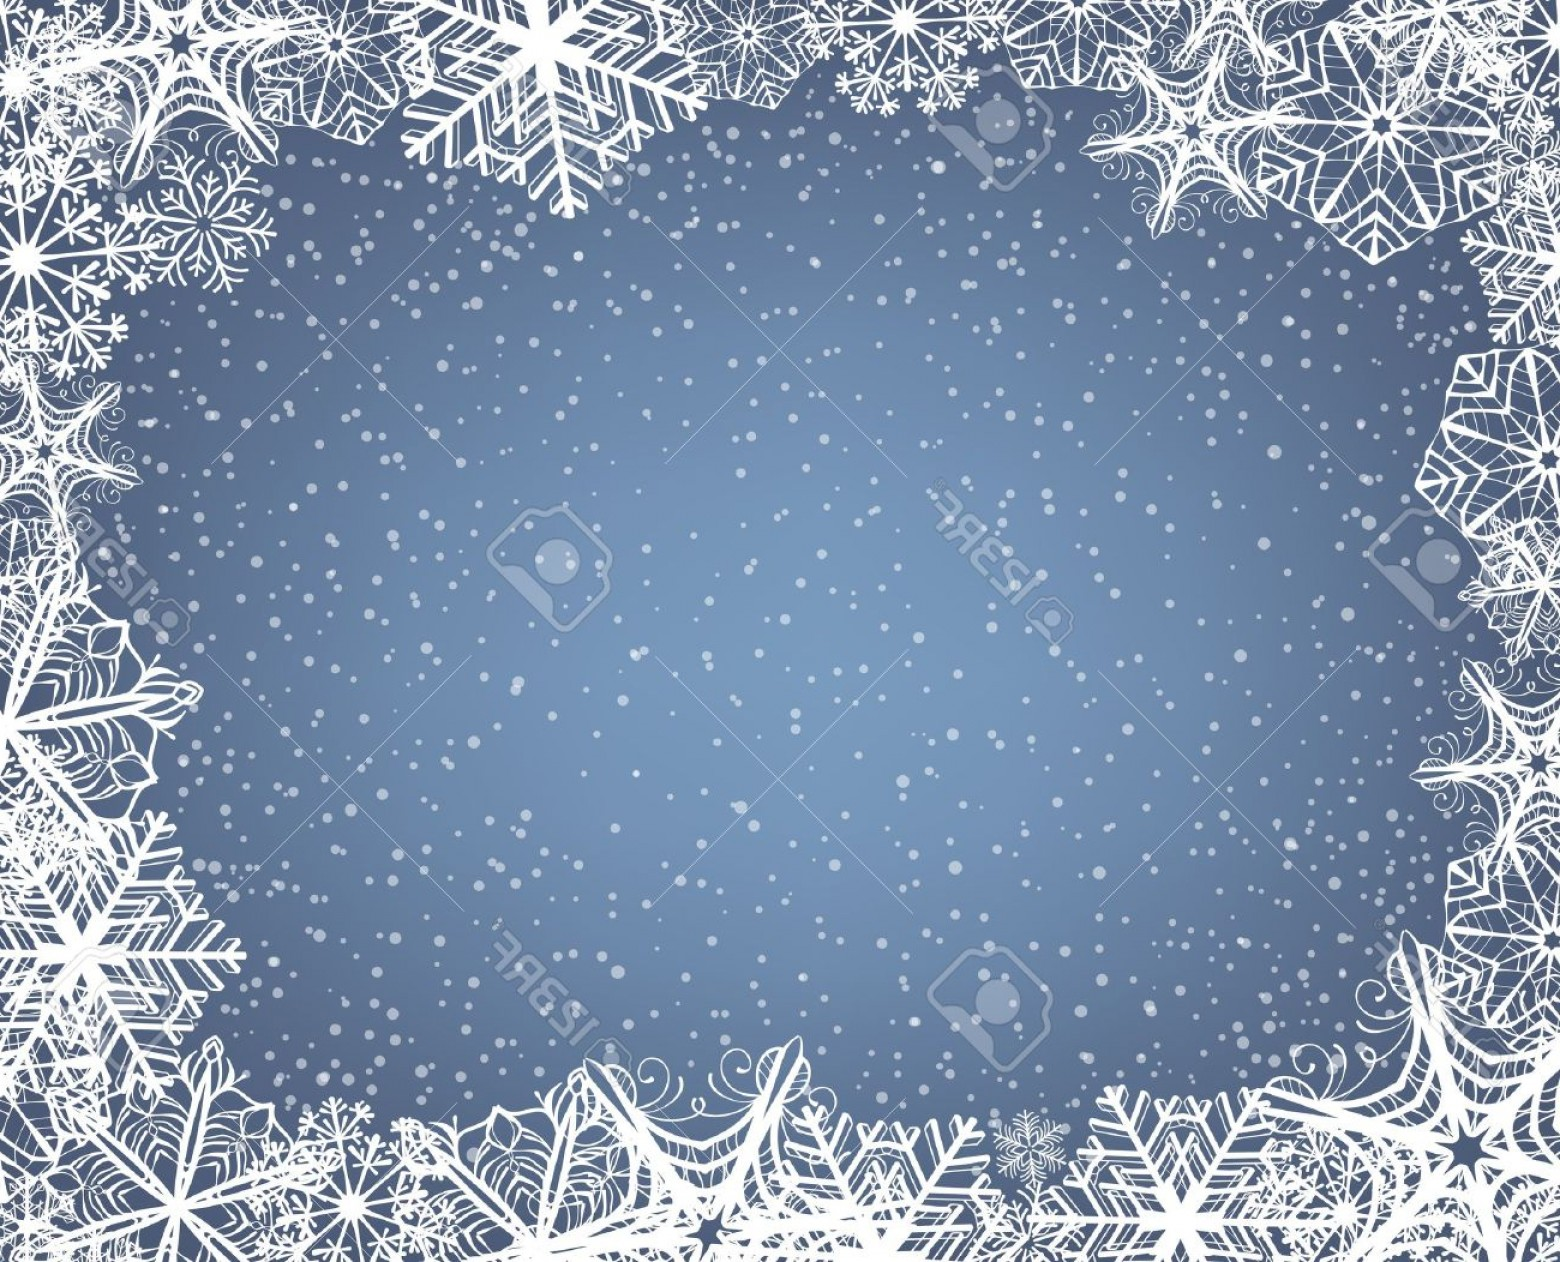 Snow Falling Vector Free: Photochristmas Background With Frame Of Snowflakes And Falling Snow